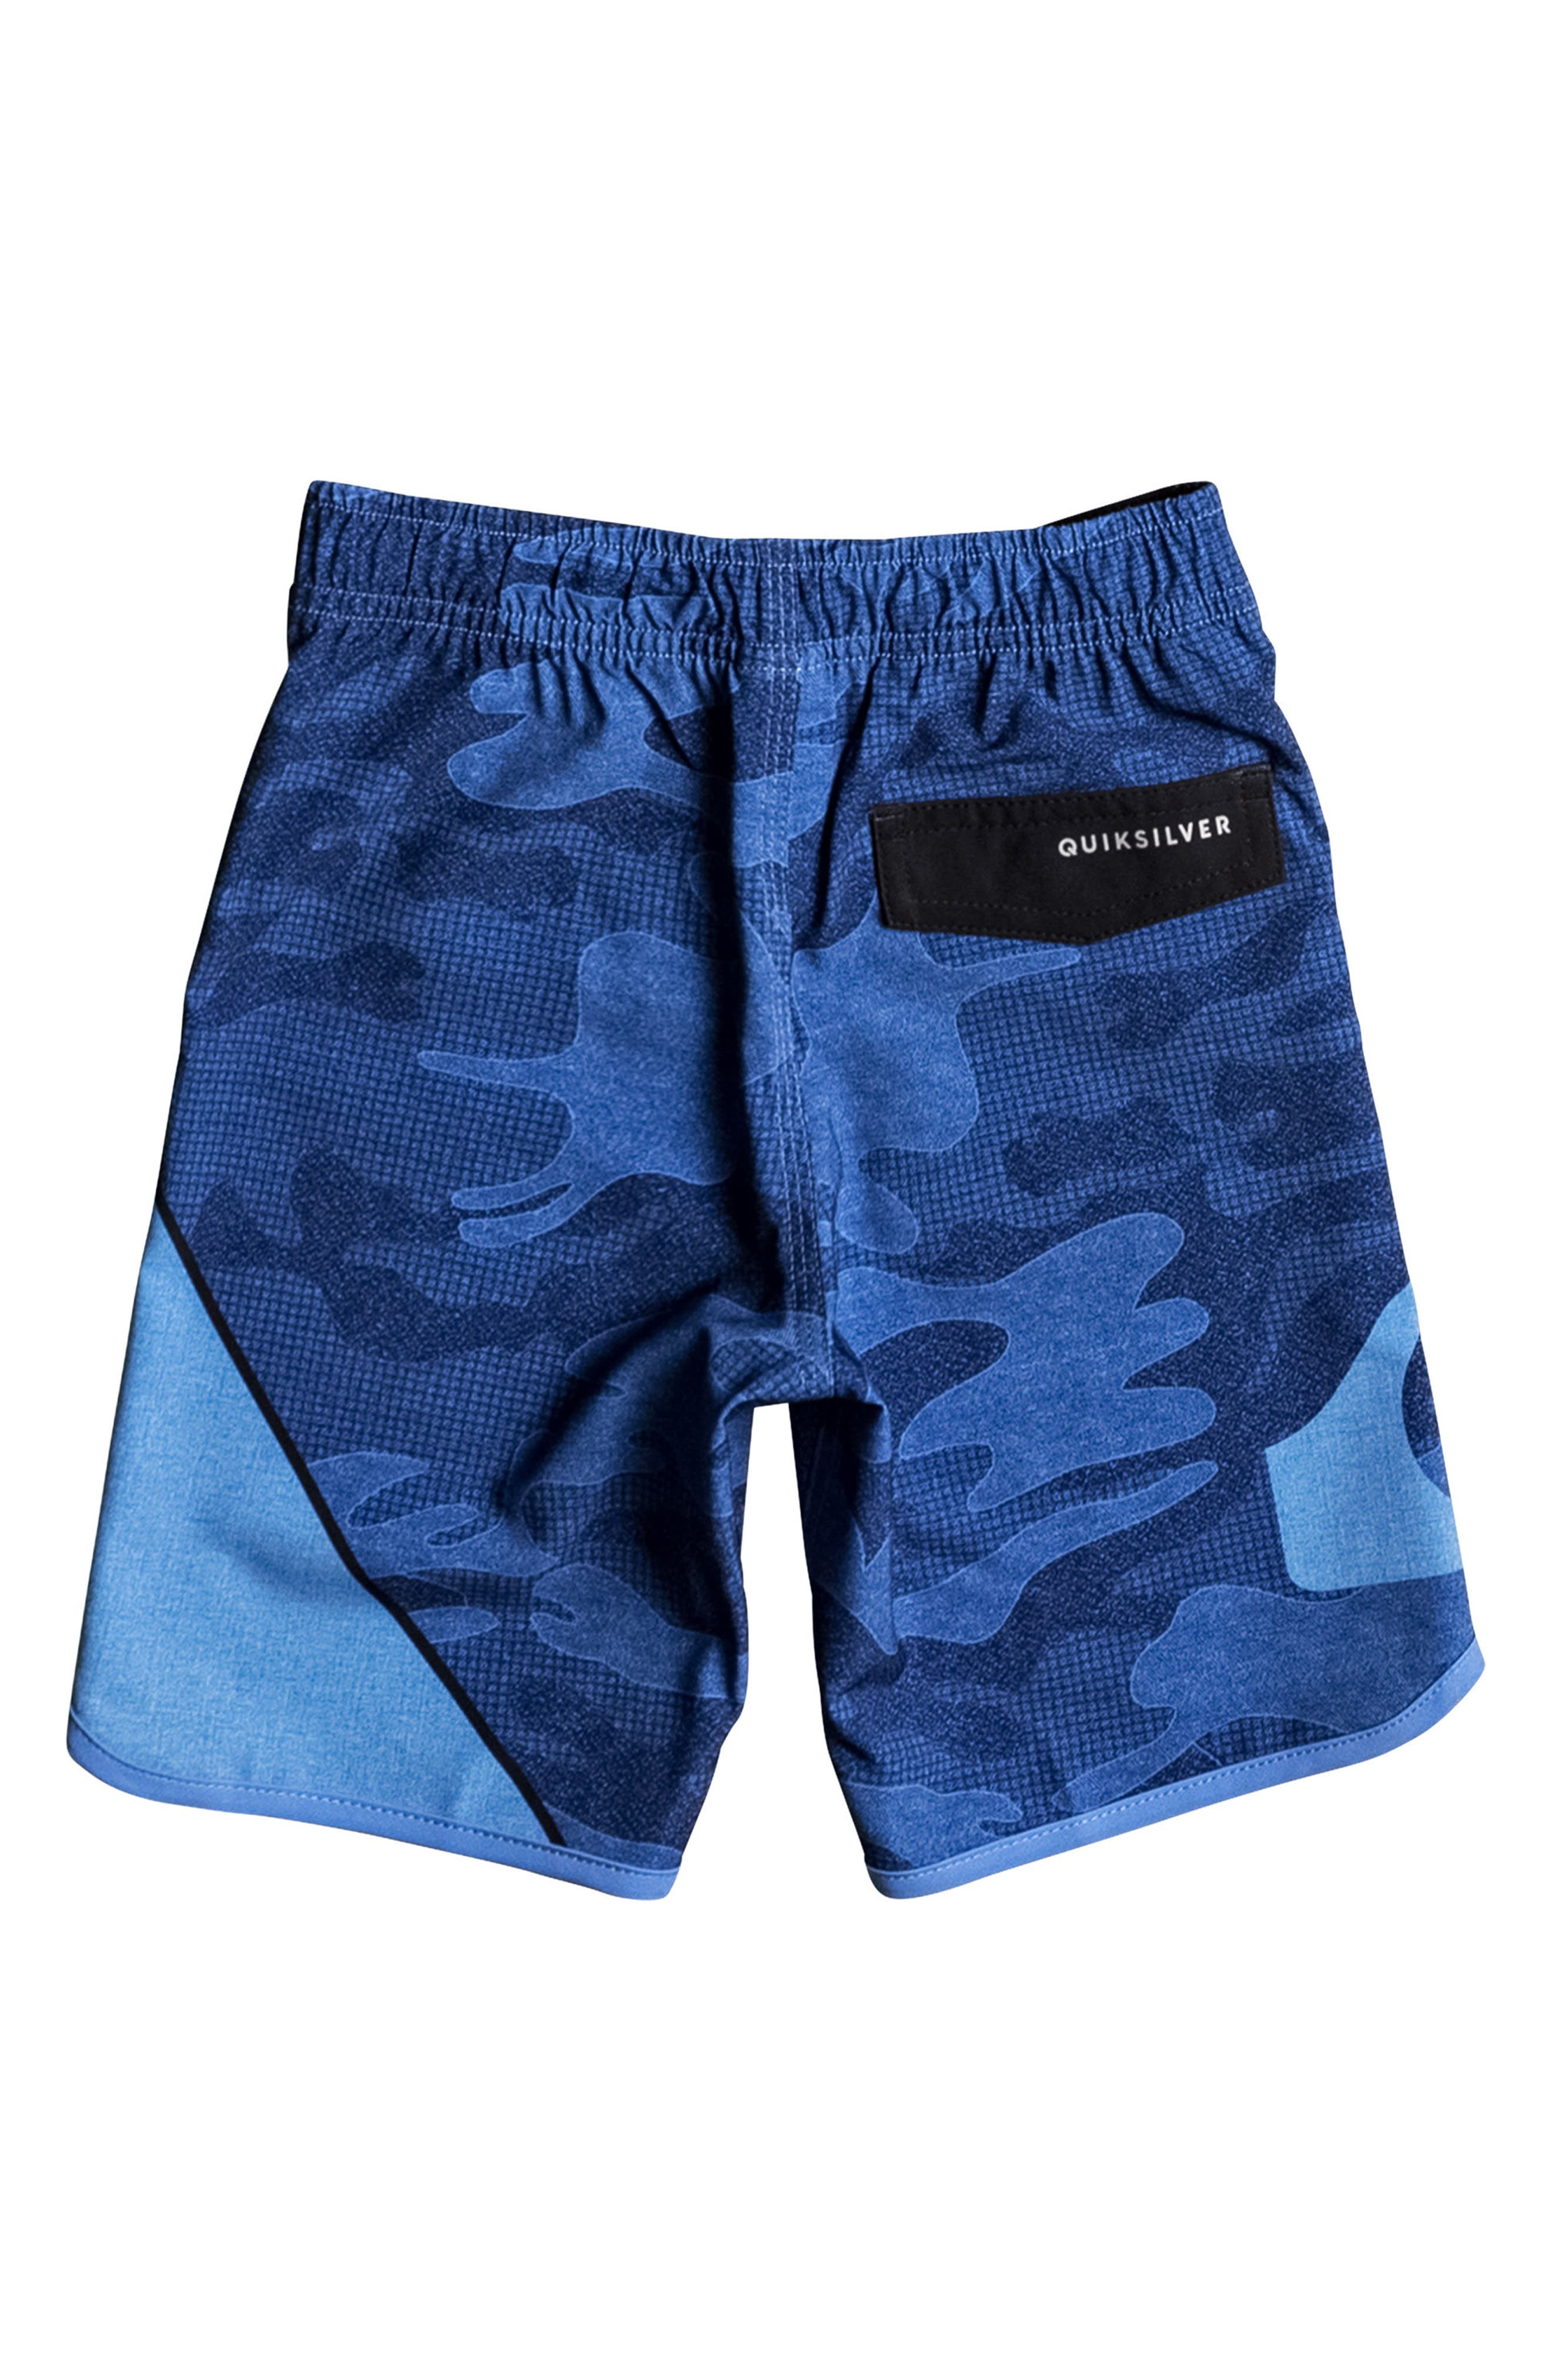 New Wave Everyday Board Shorts,                             Alternate thumbnail 2, color,                             422